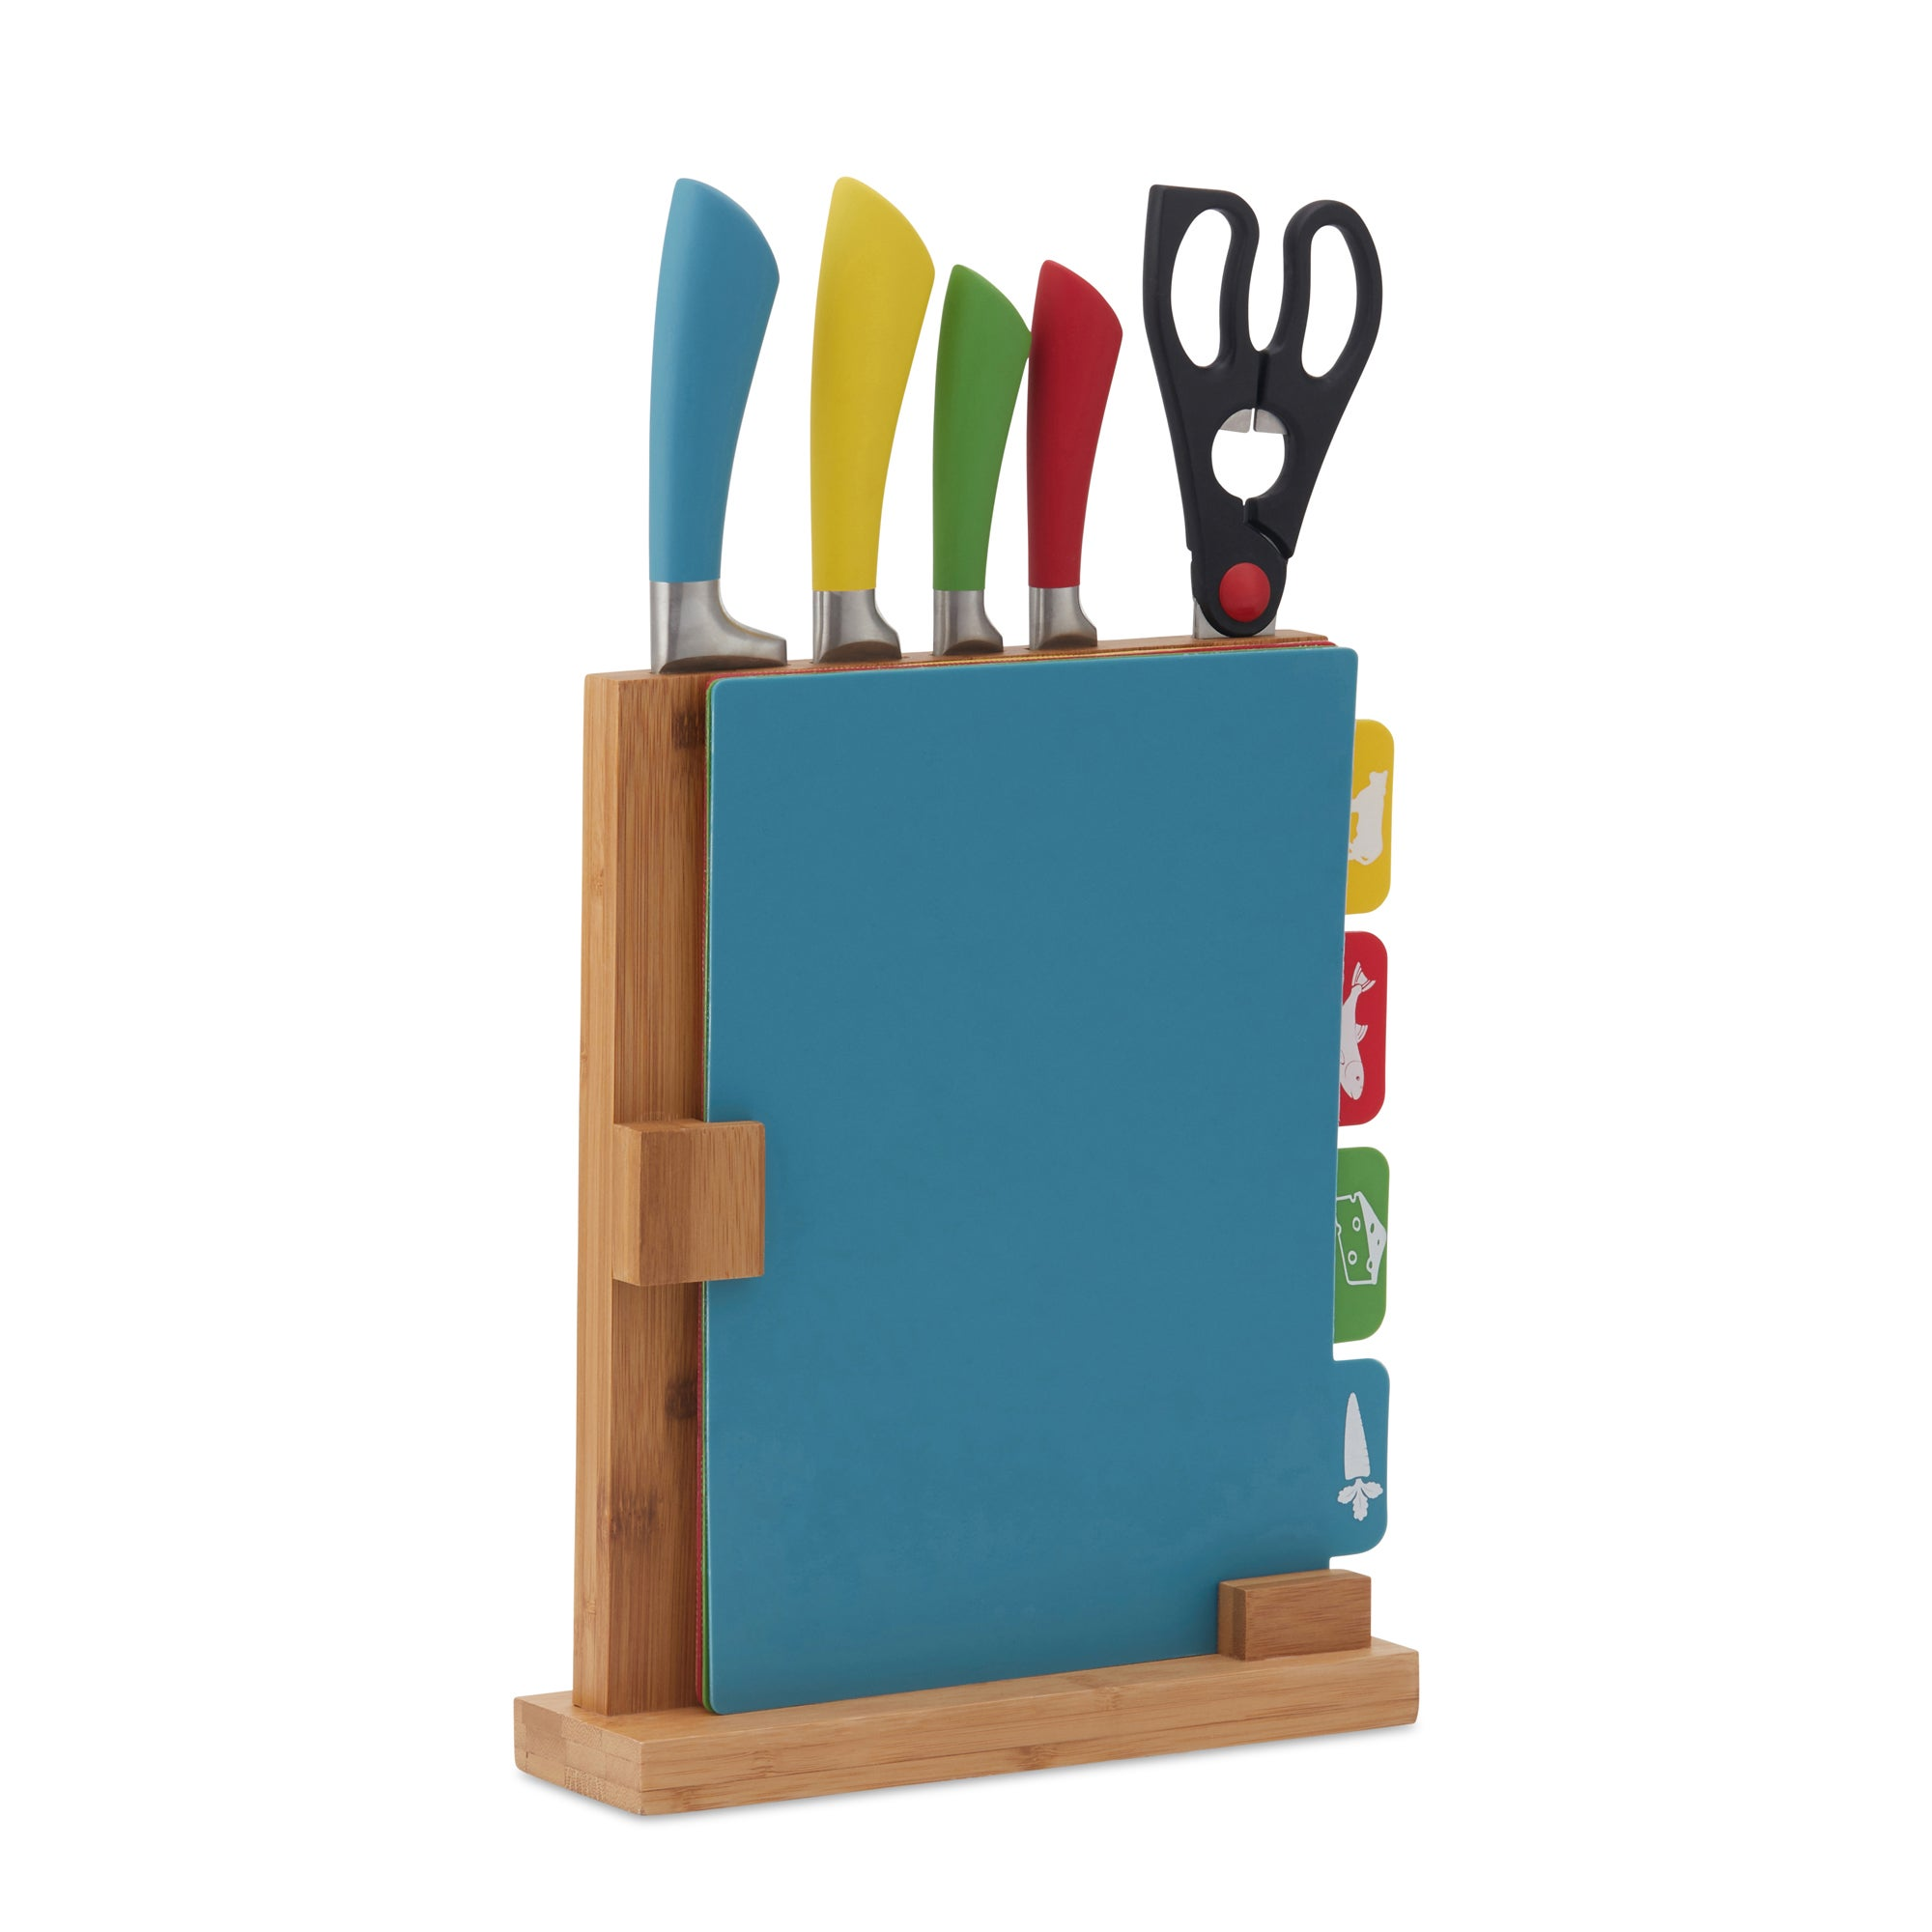 5 Piece Colour Soft Grip Knives and Chopping Board Set Blue, Brown and Yellow